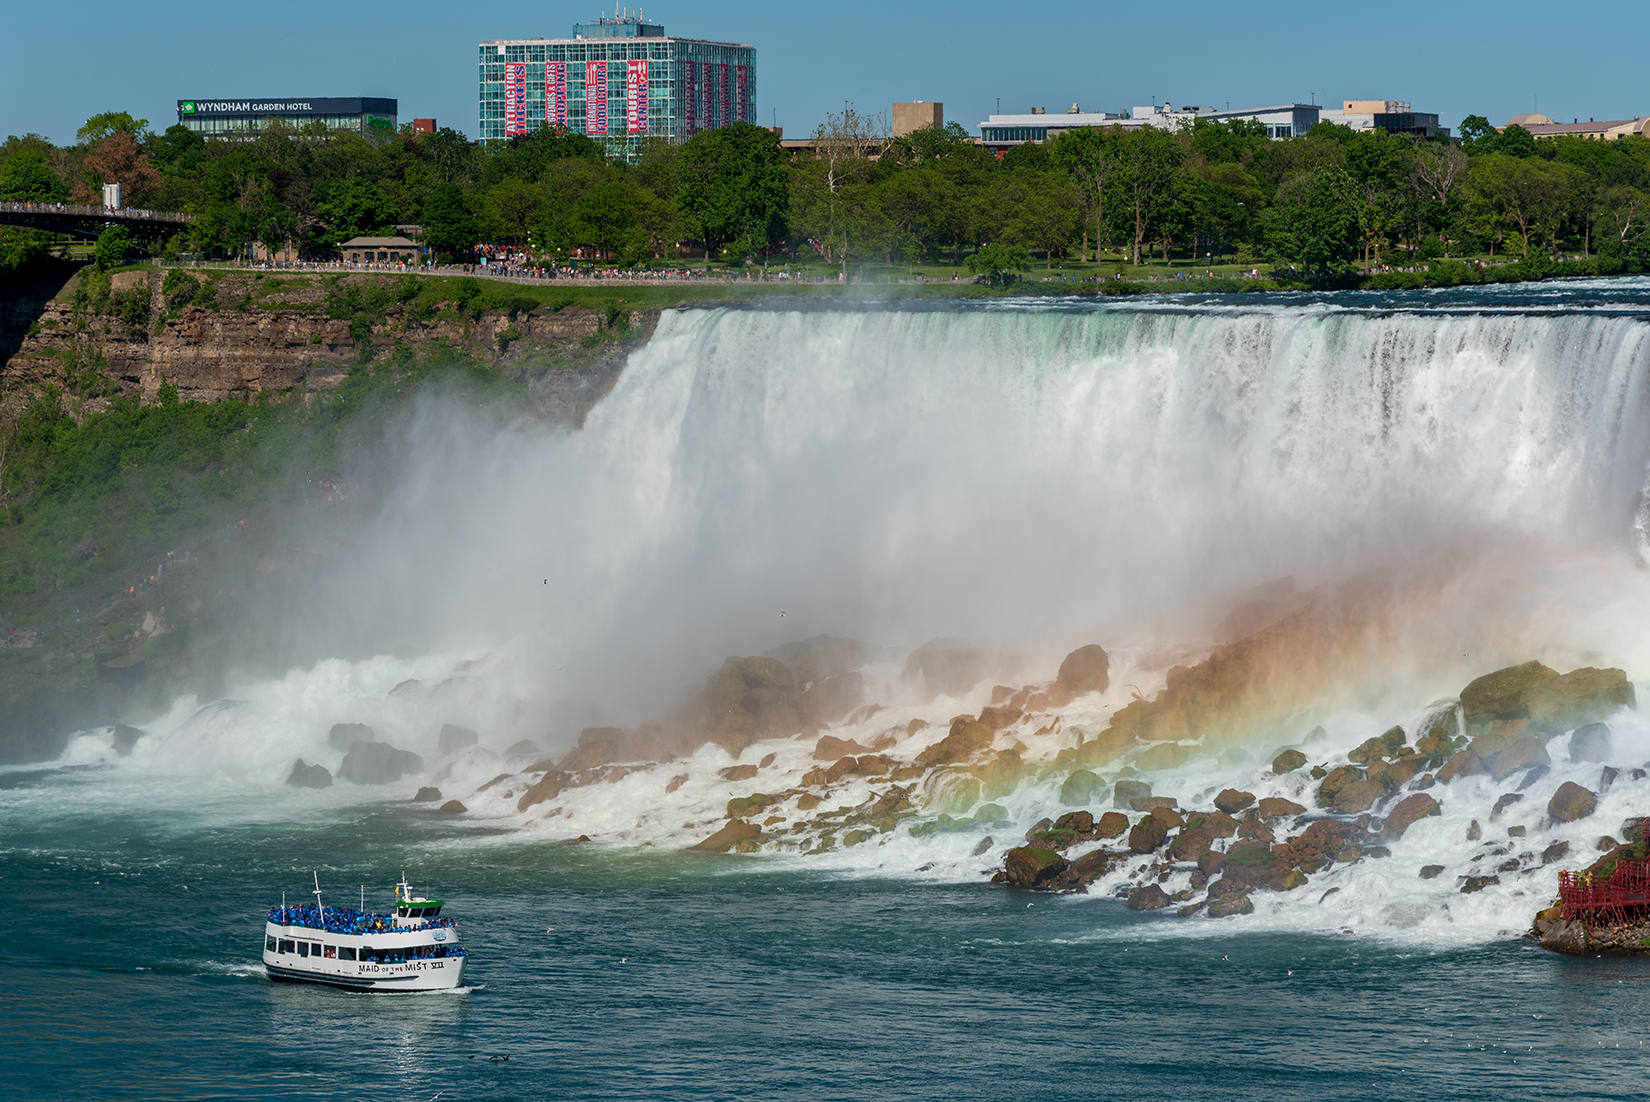 'Maid of the Mist' cruise boat passing the American Falls